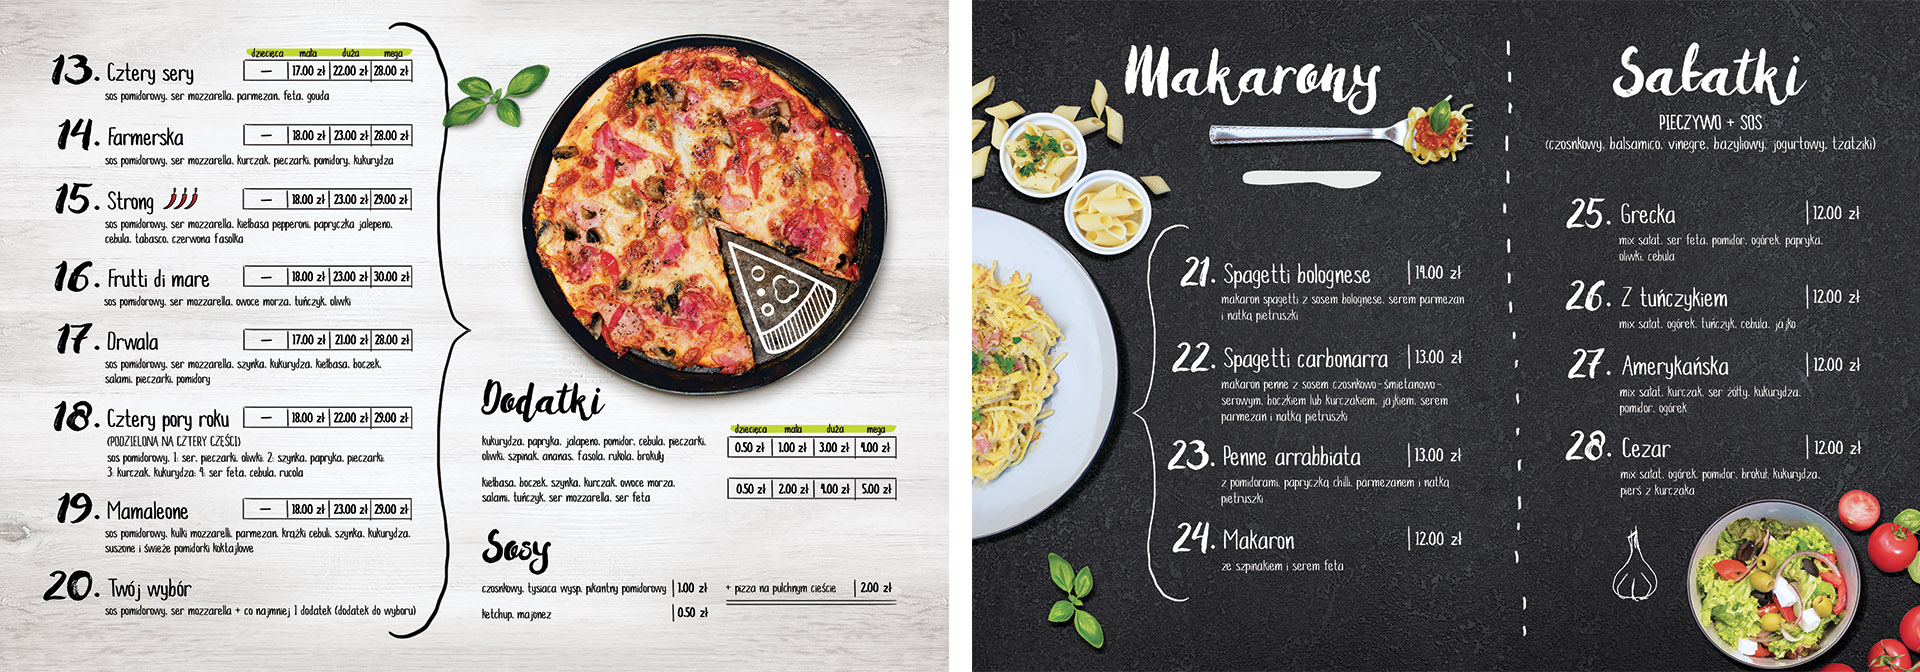 Mamaleone pizza i catering Menu